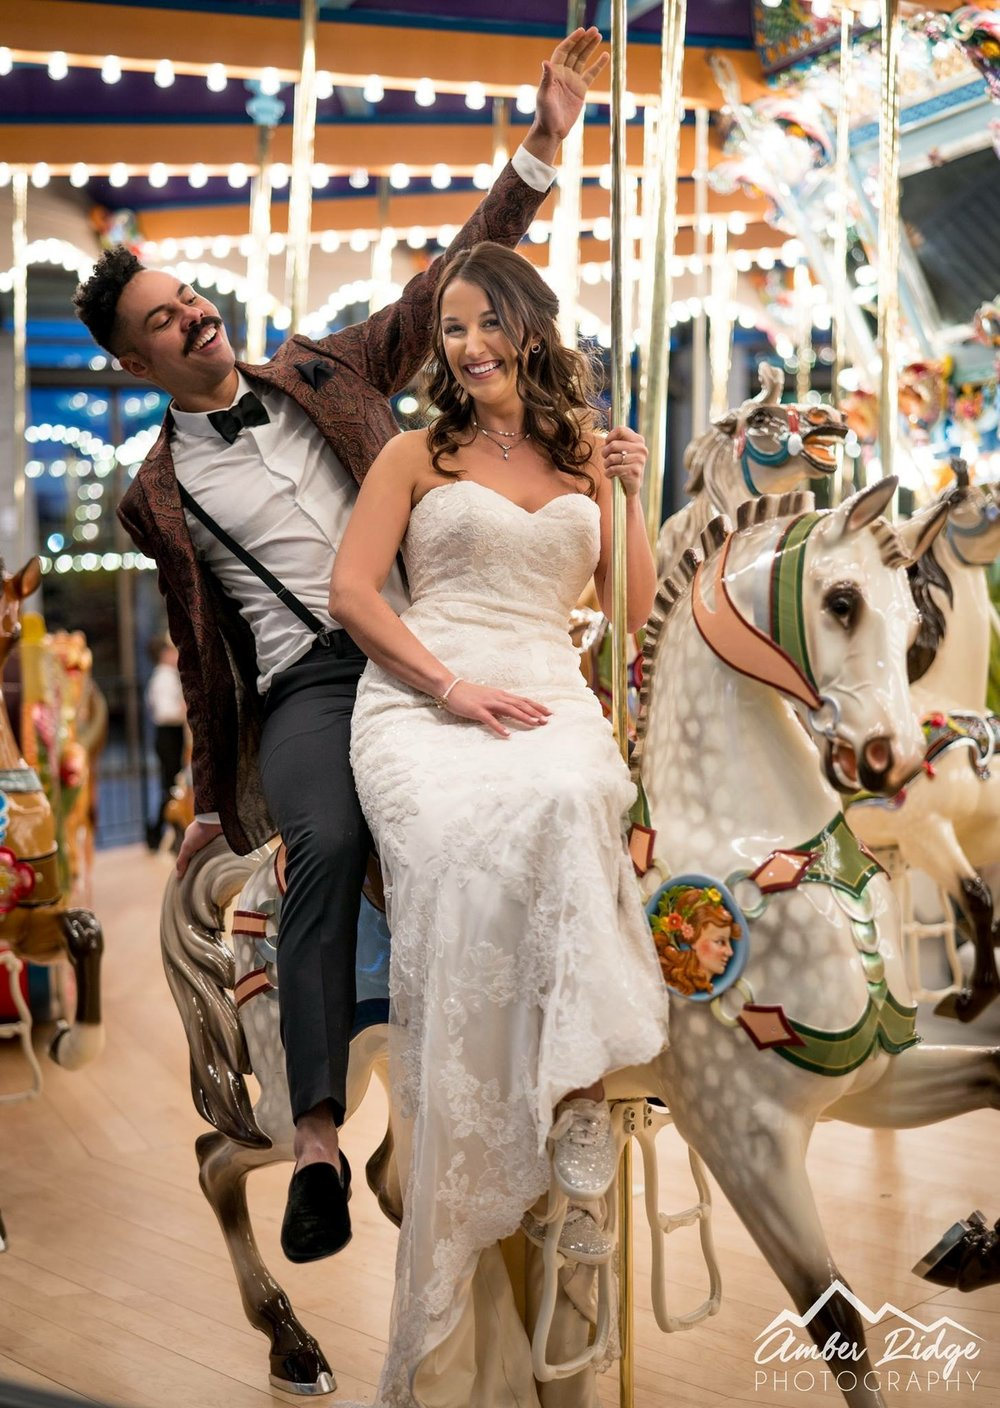 From weddings to corporate events, the carousel makes your event one-of-a-kind